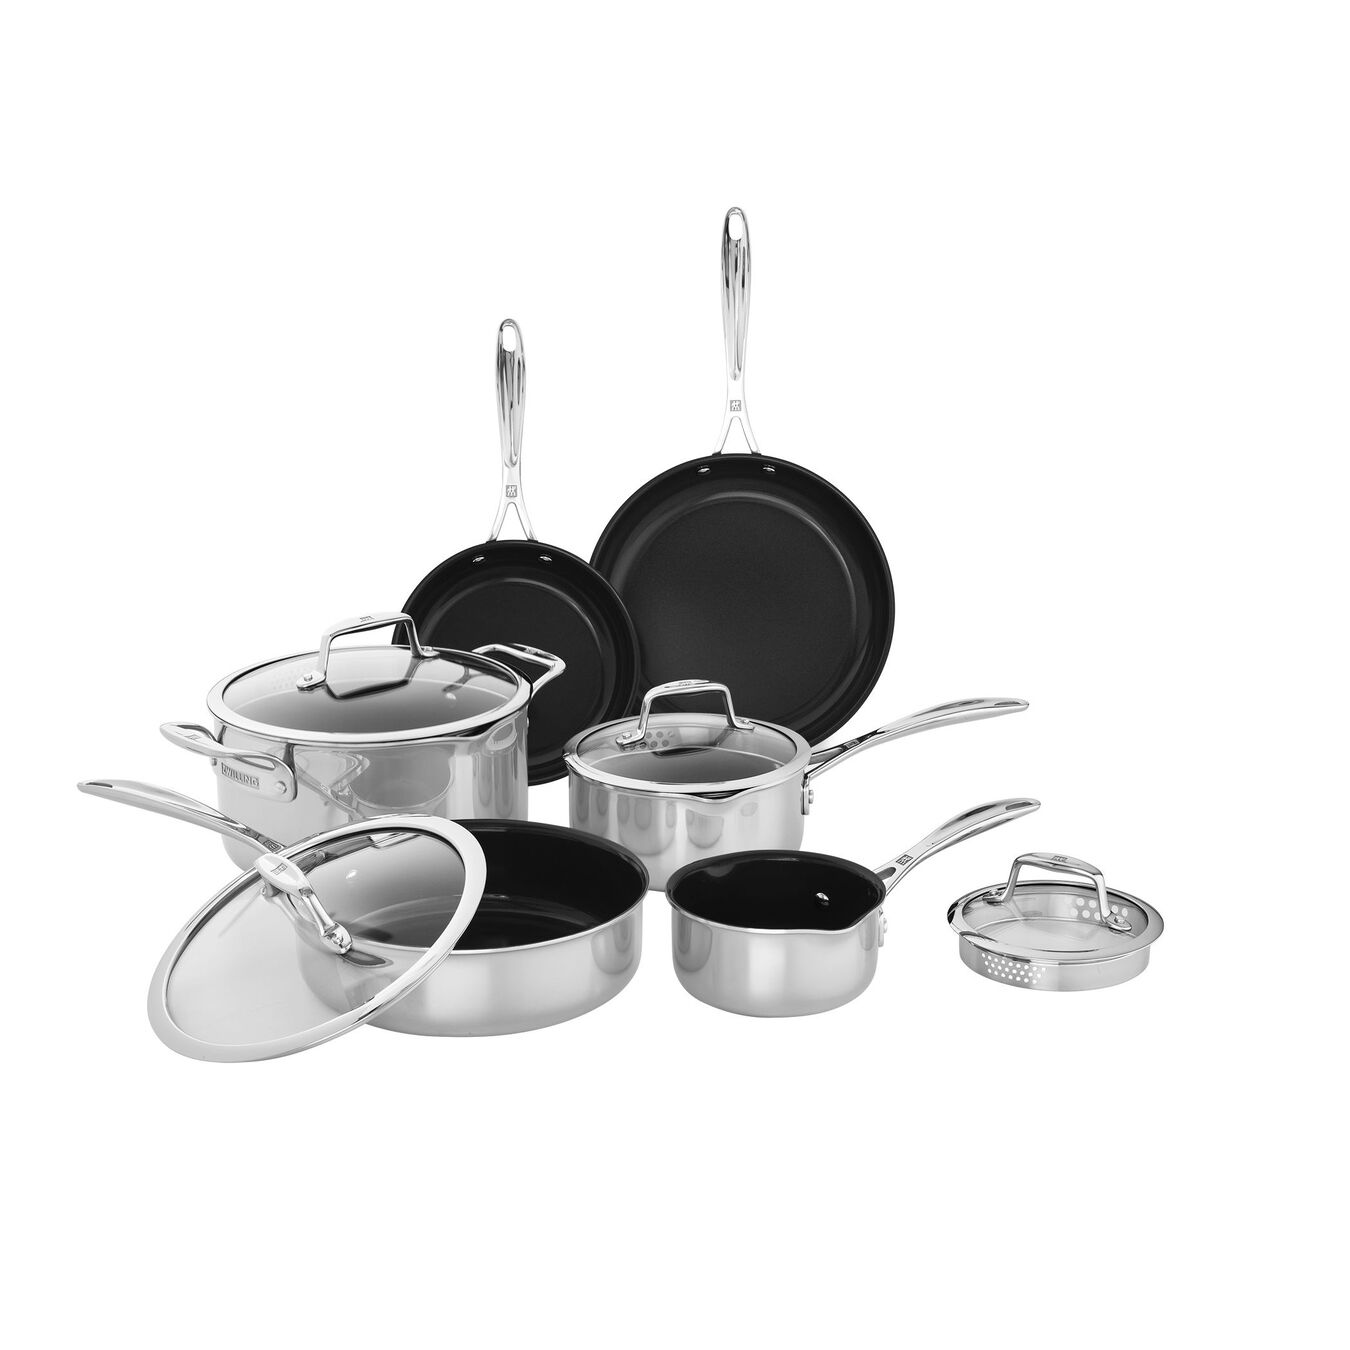 10-pc Stainless steel Cookware Set,,large 1